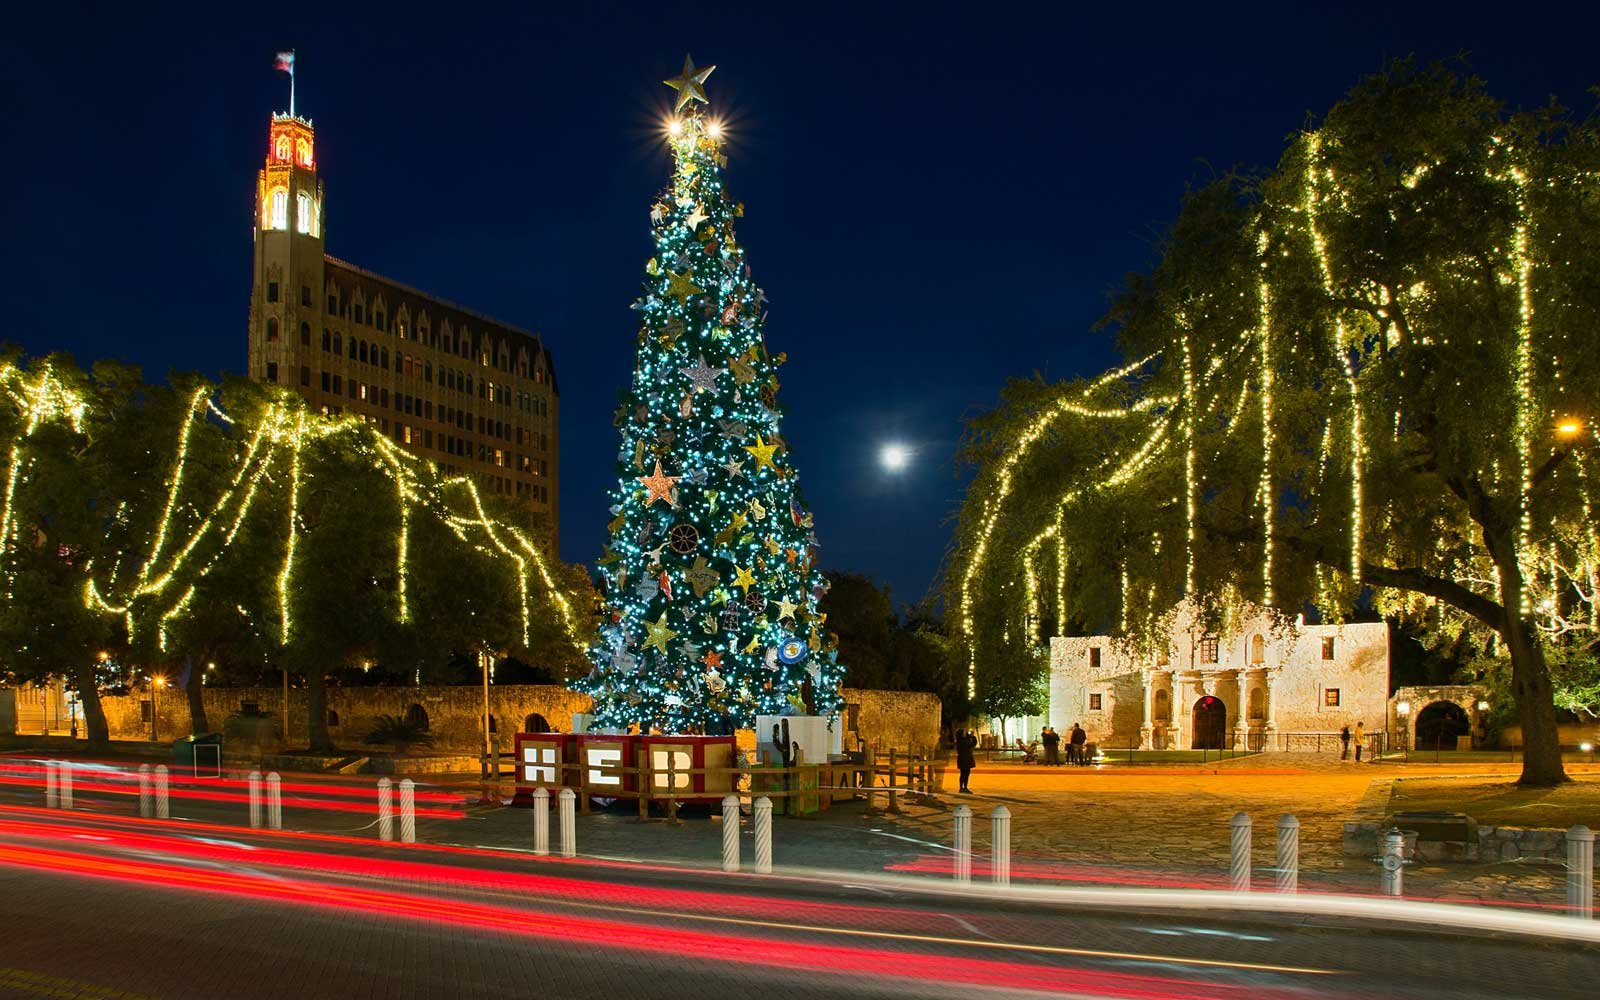 Towns that have great christmas decorations read - Best Places For Christmas Lights